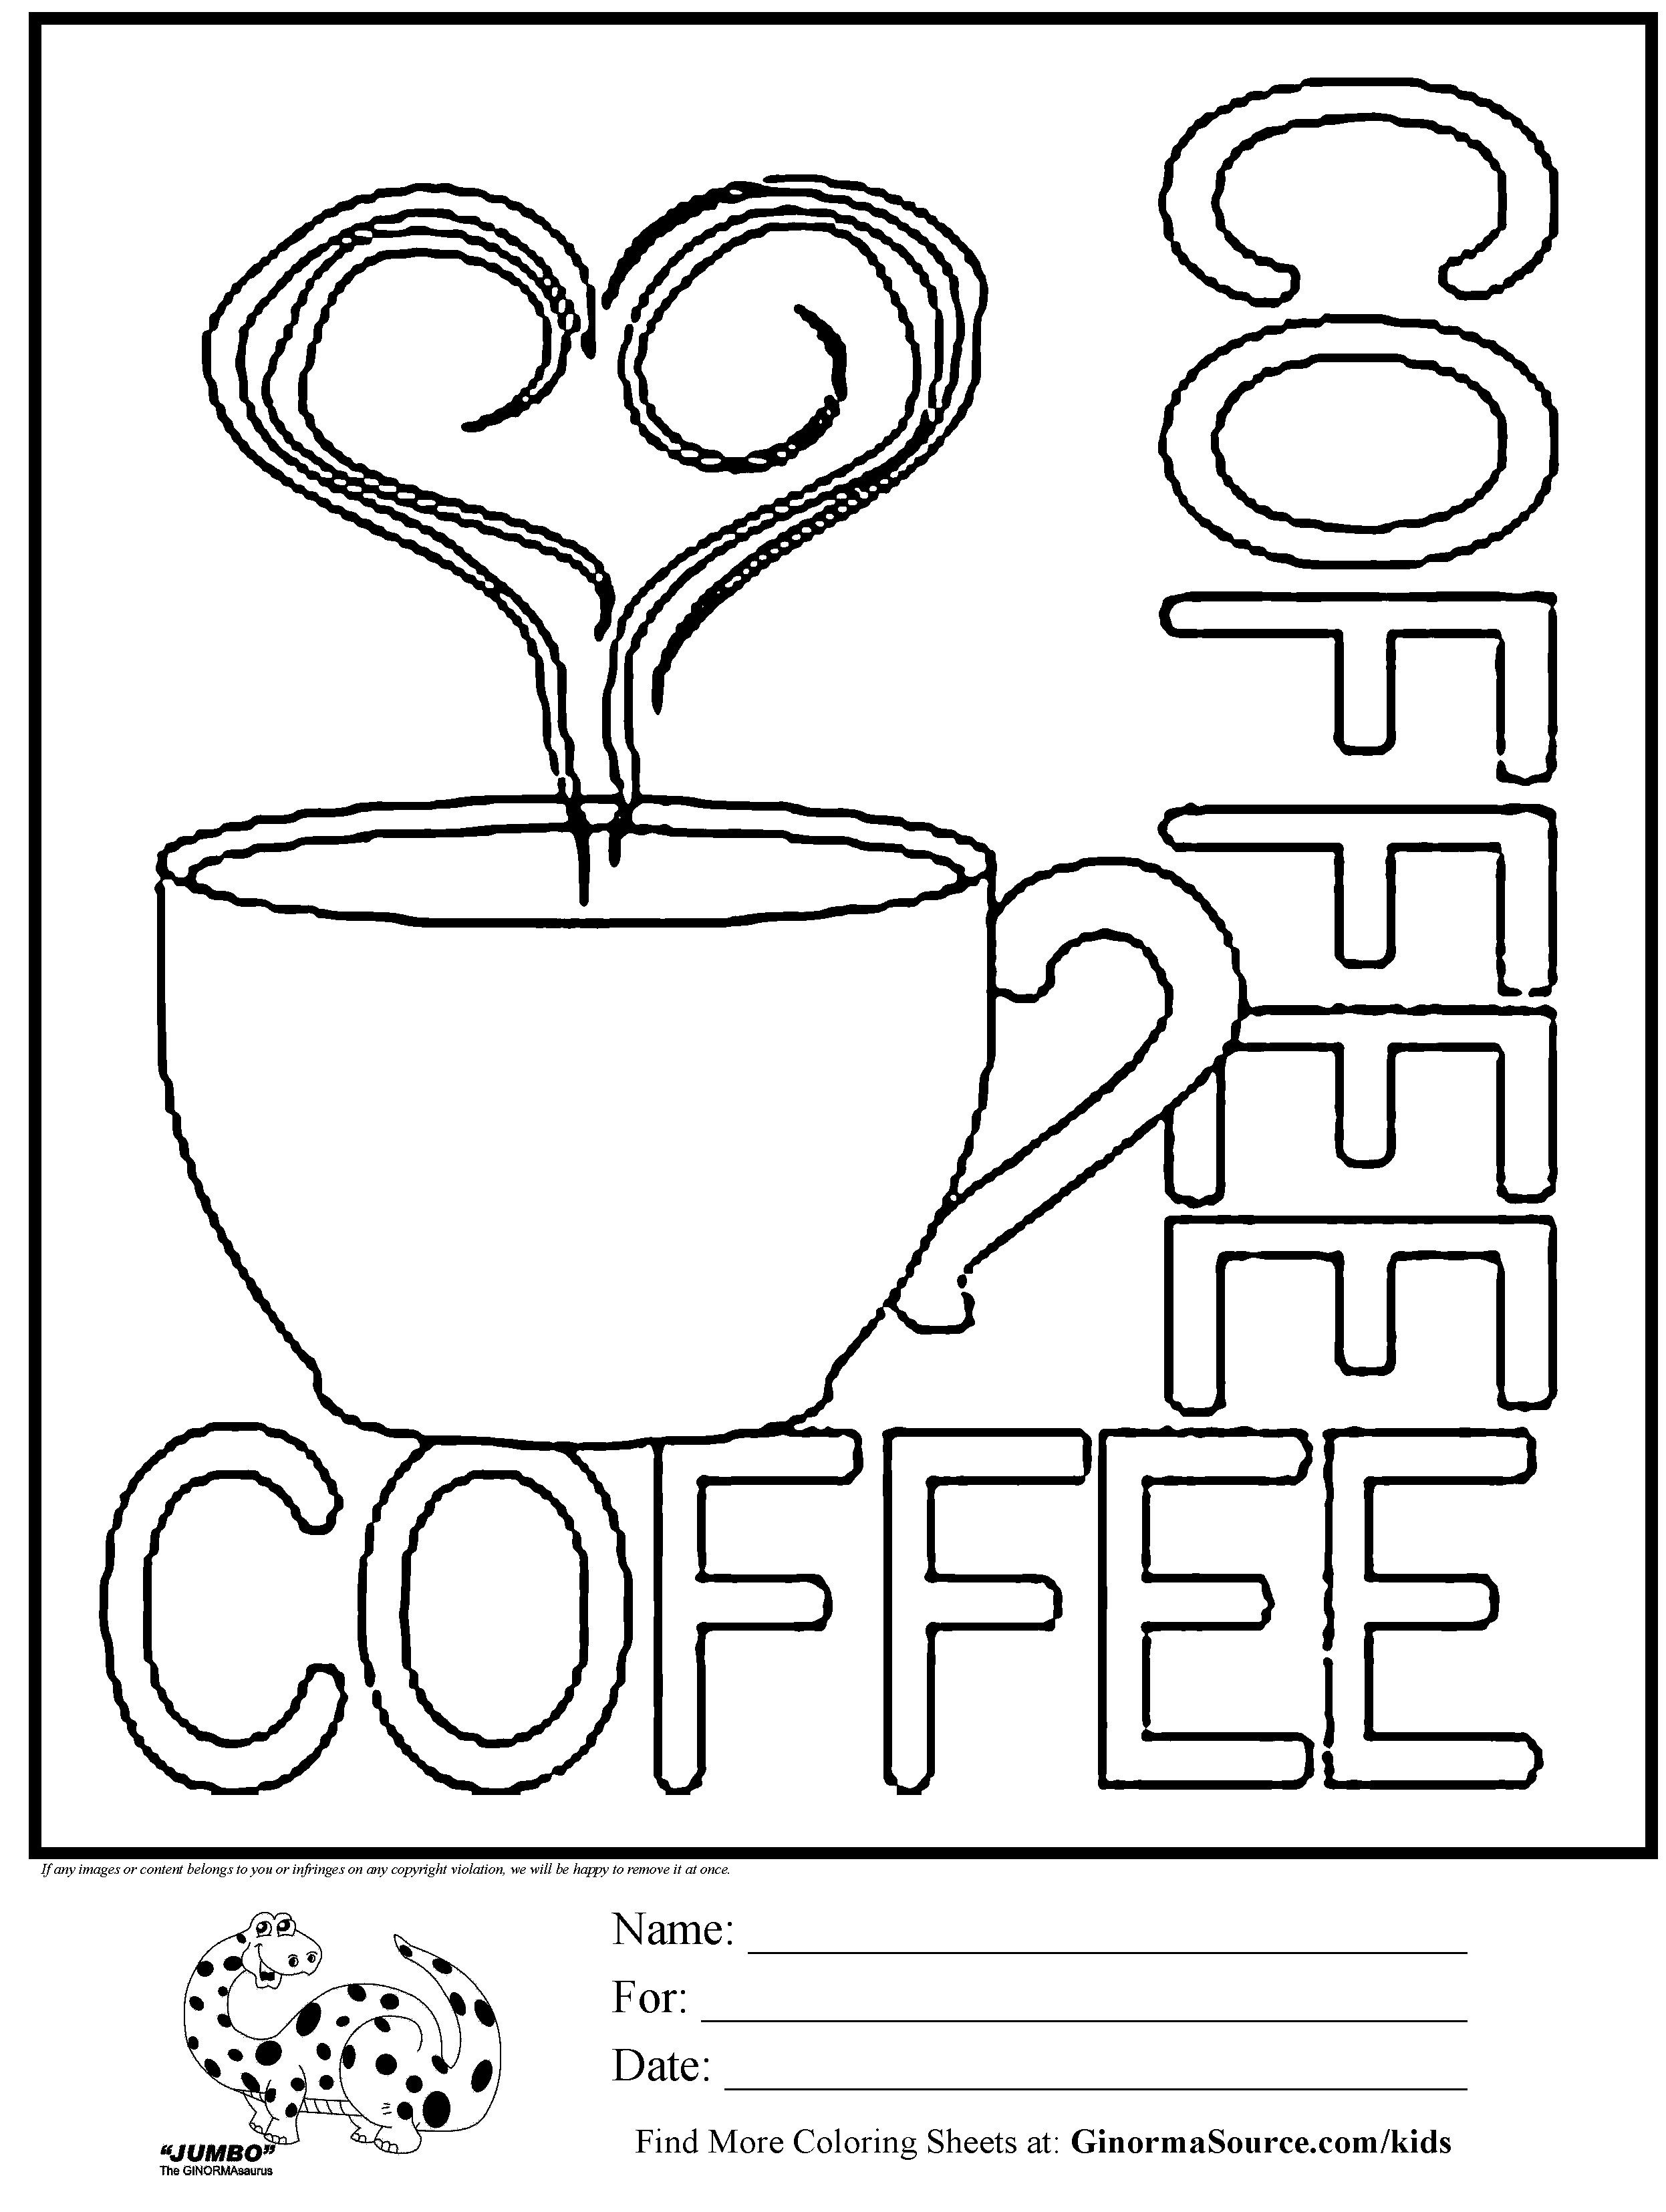 Excellent Image of Starbucks Coloring Page Free coloring